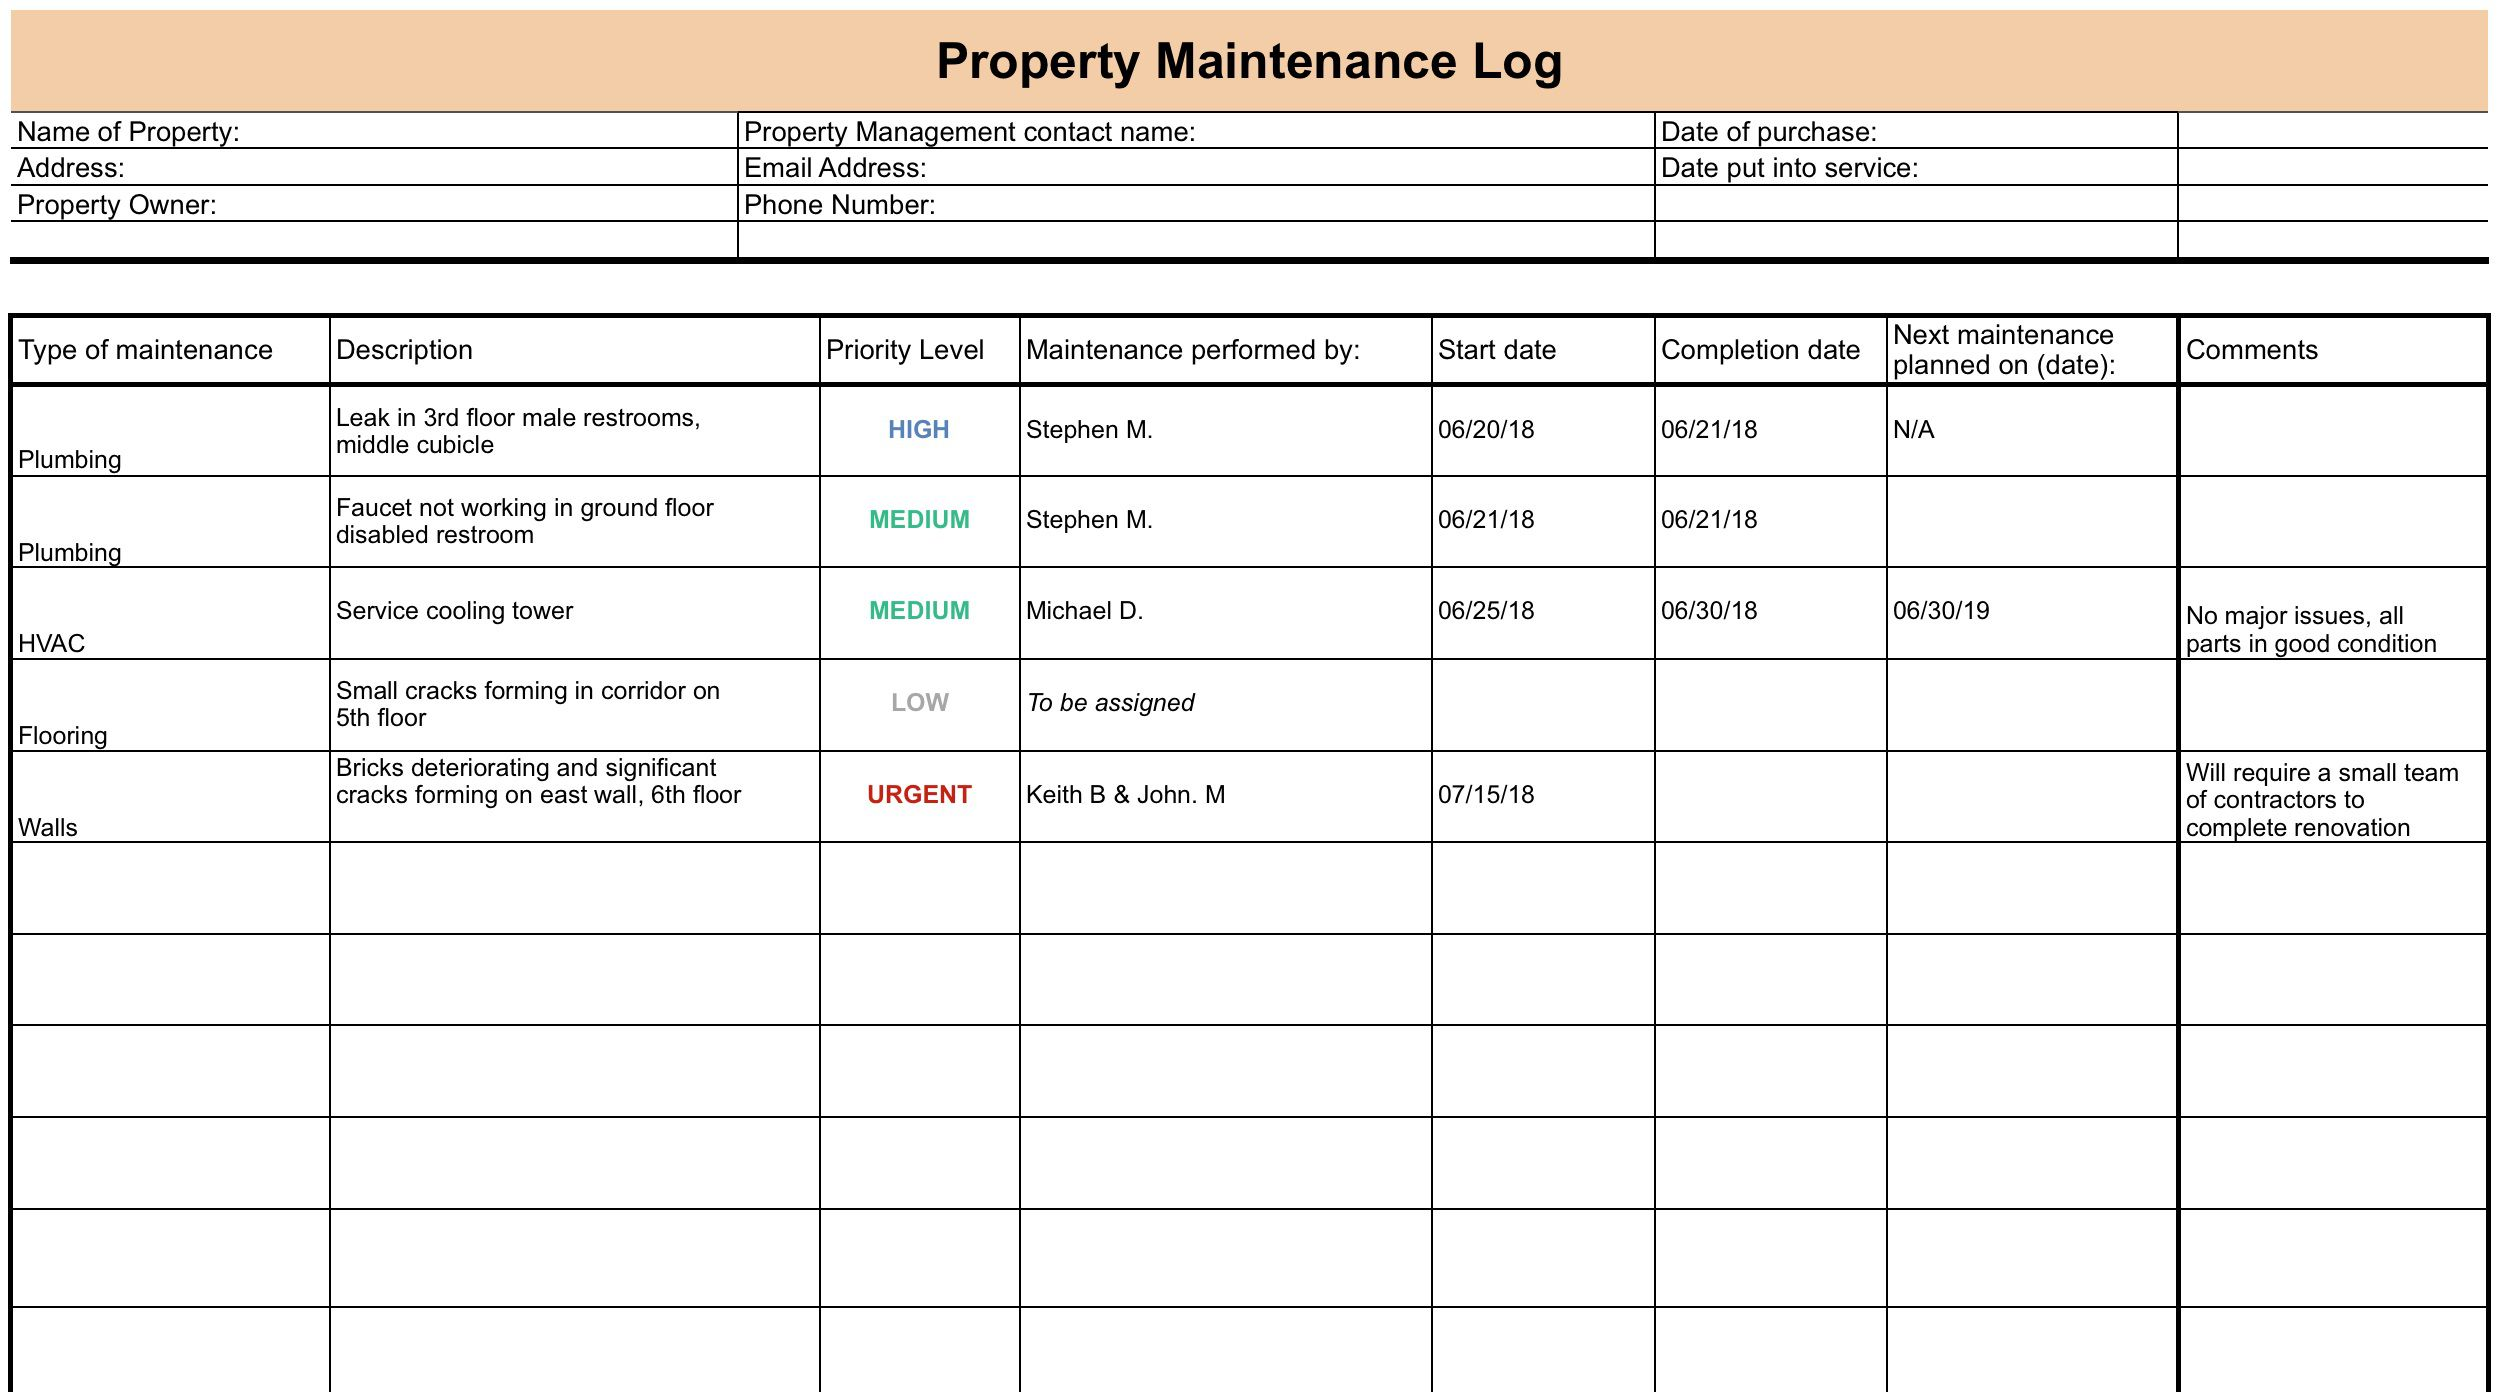 007 Incredible Property Management Maintenance Checklist Template High Def  FreeFull